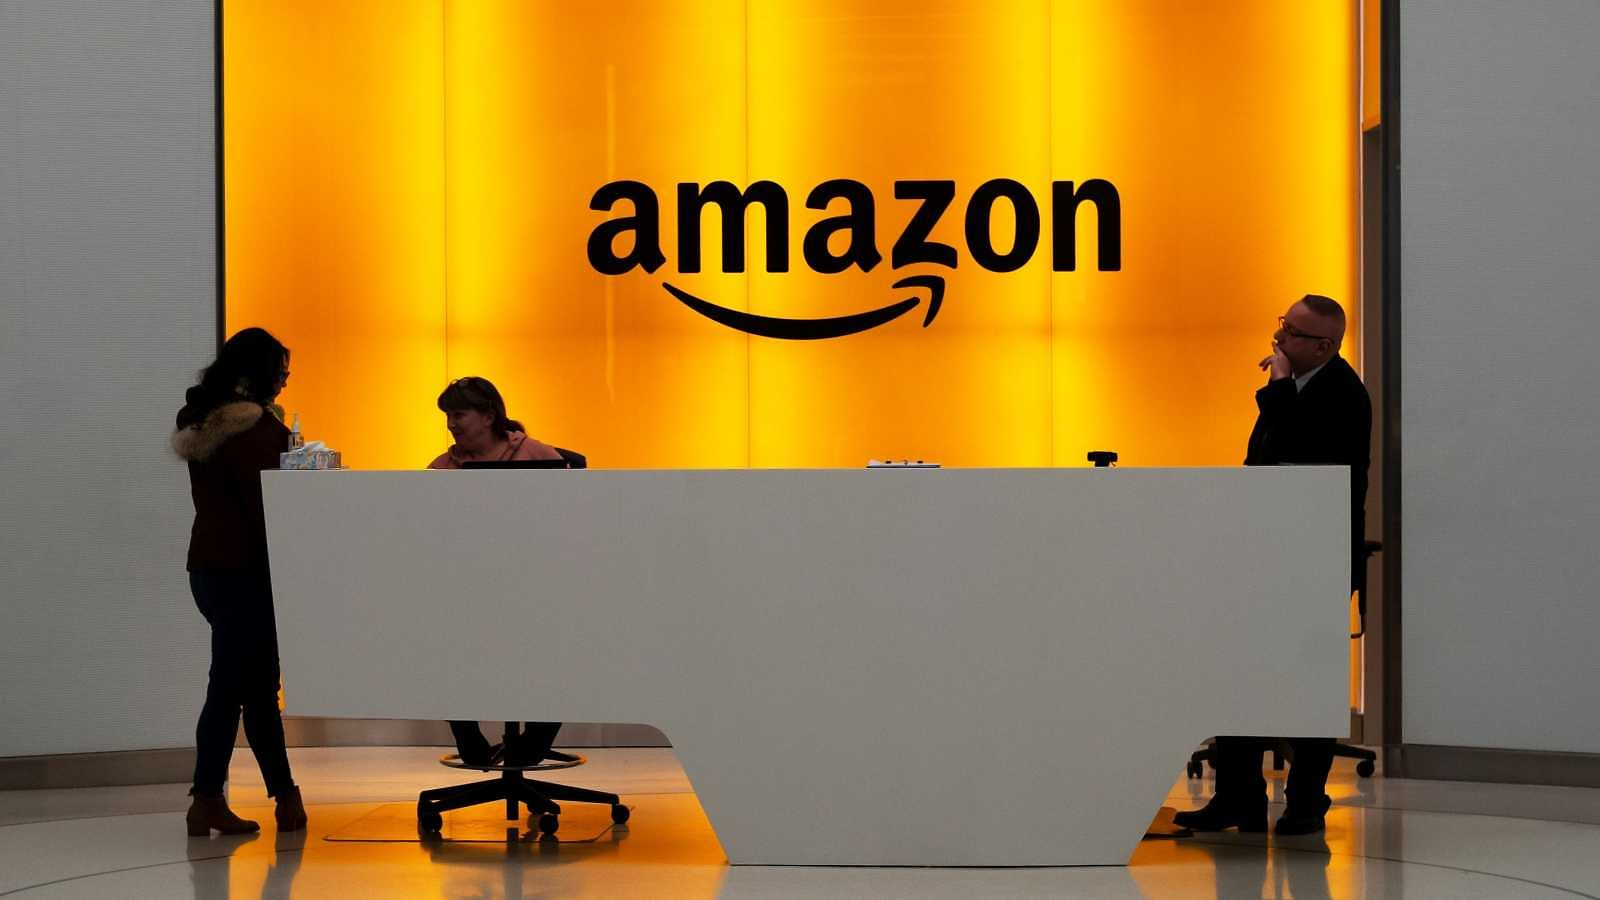 Amazon Says 2020 Shopping Season Has Been Their Biggest Ever with Big Black Friday, Cyber Monday Sales